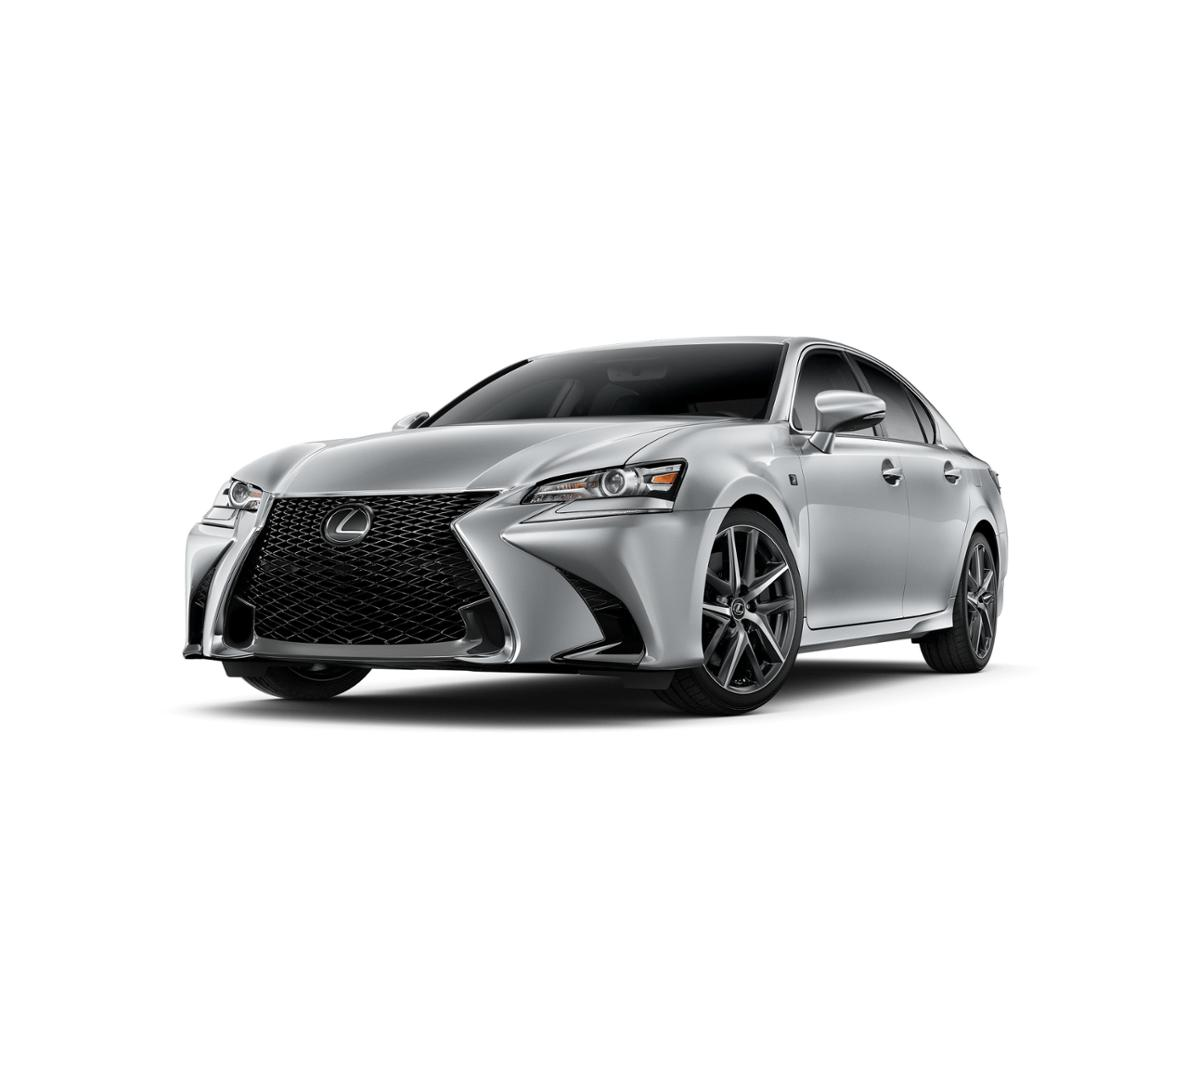 2017 Lexus GS 350 Vehicle Photo in Dallas, TX 75209